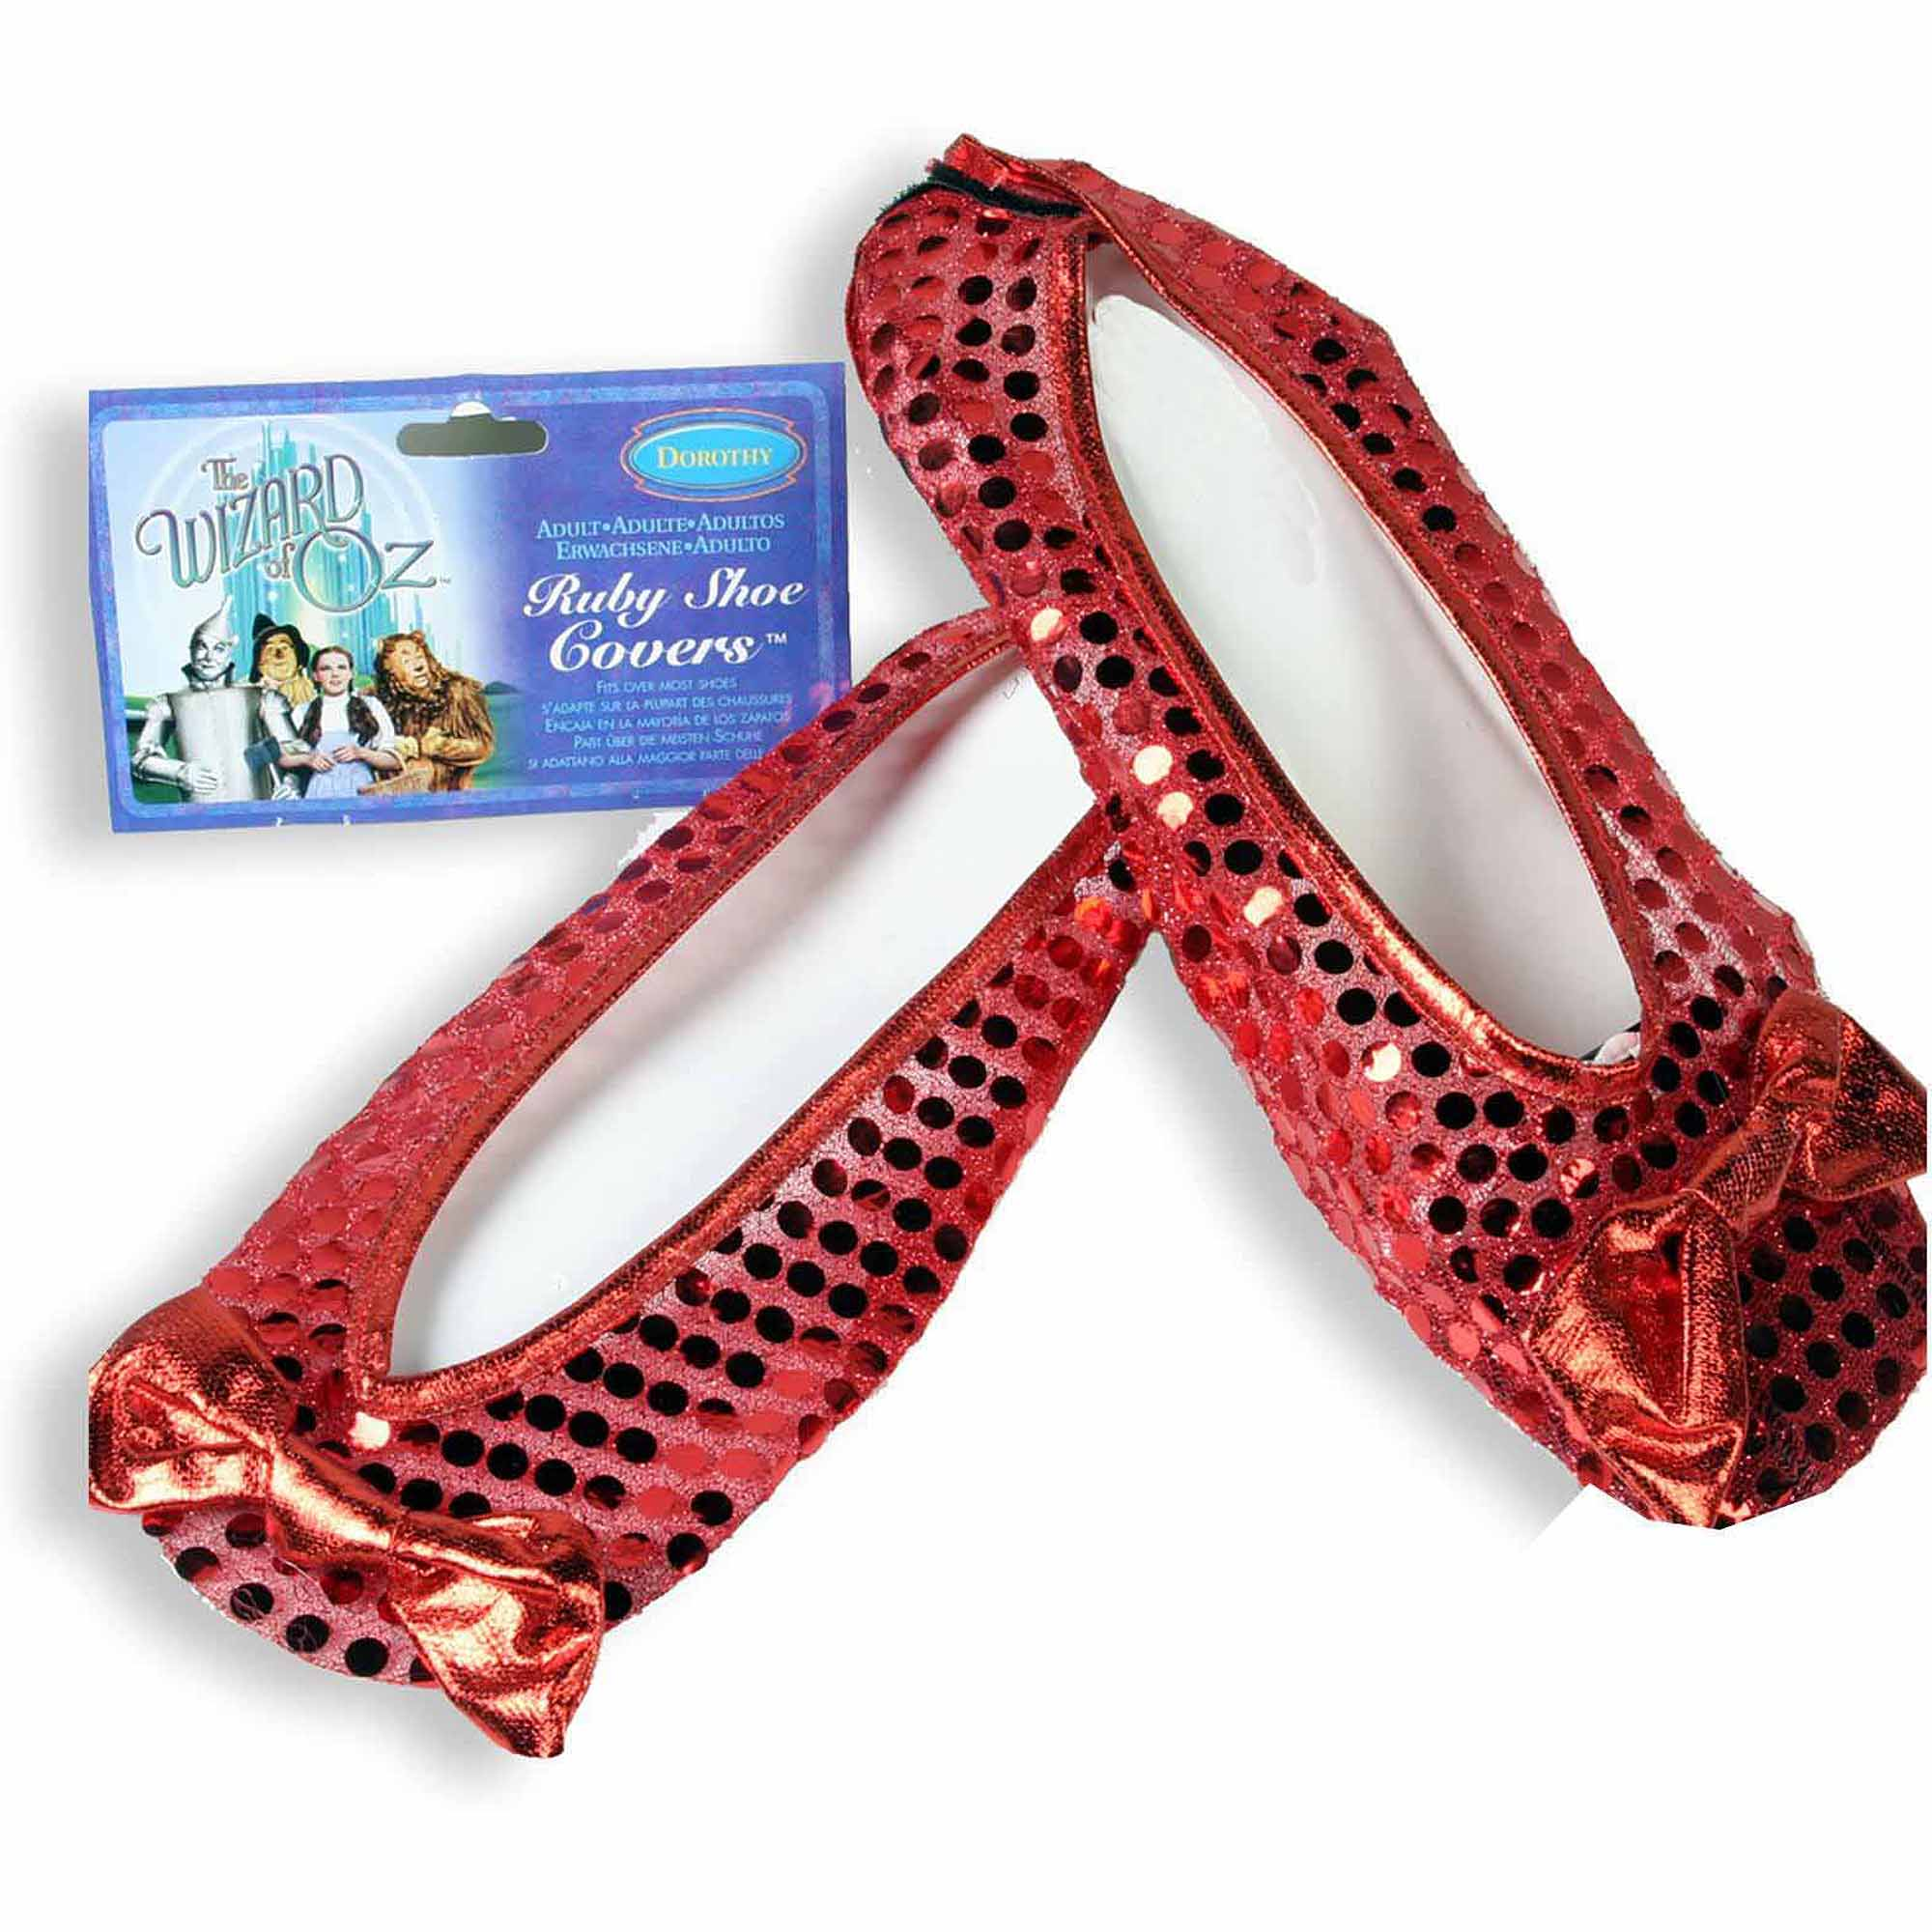 The Wizard of Oz Shoe Covers Adult Halloween Costume Accessory